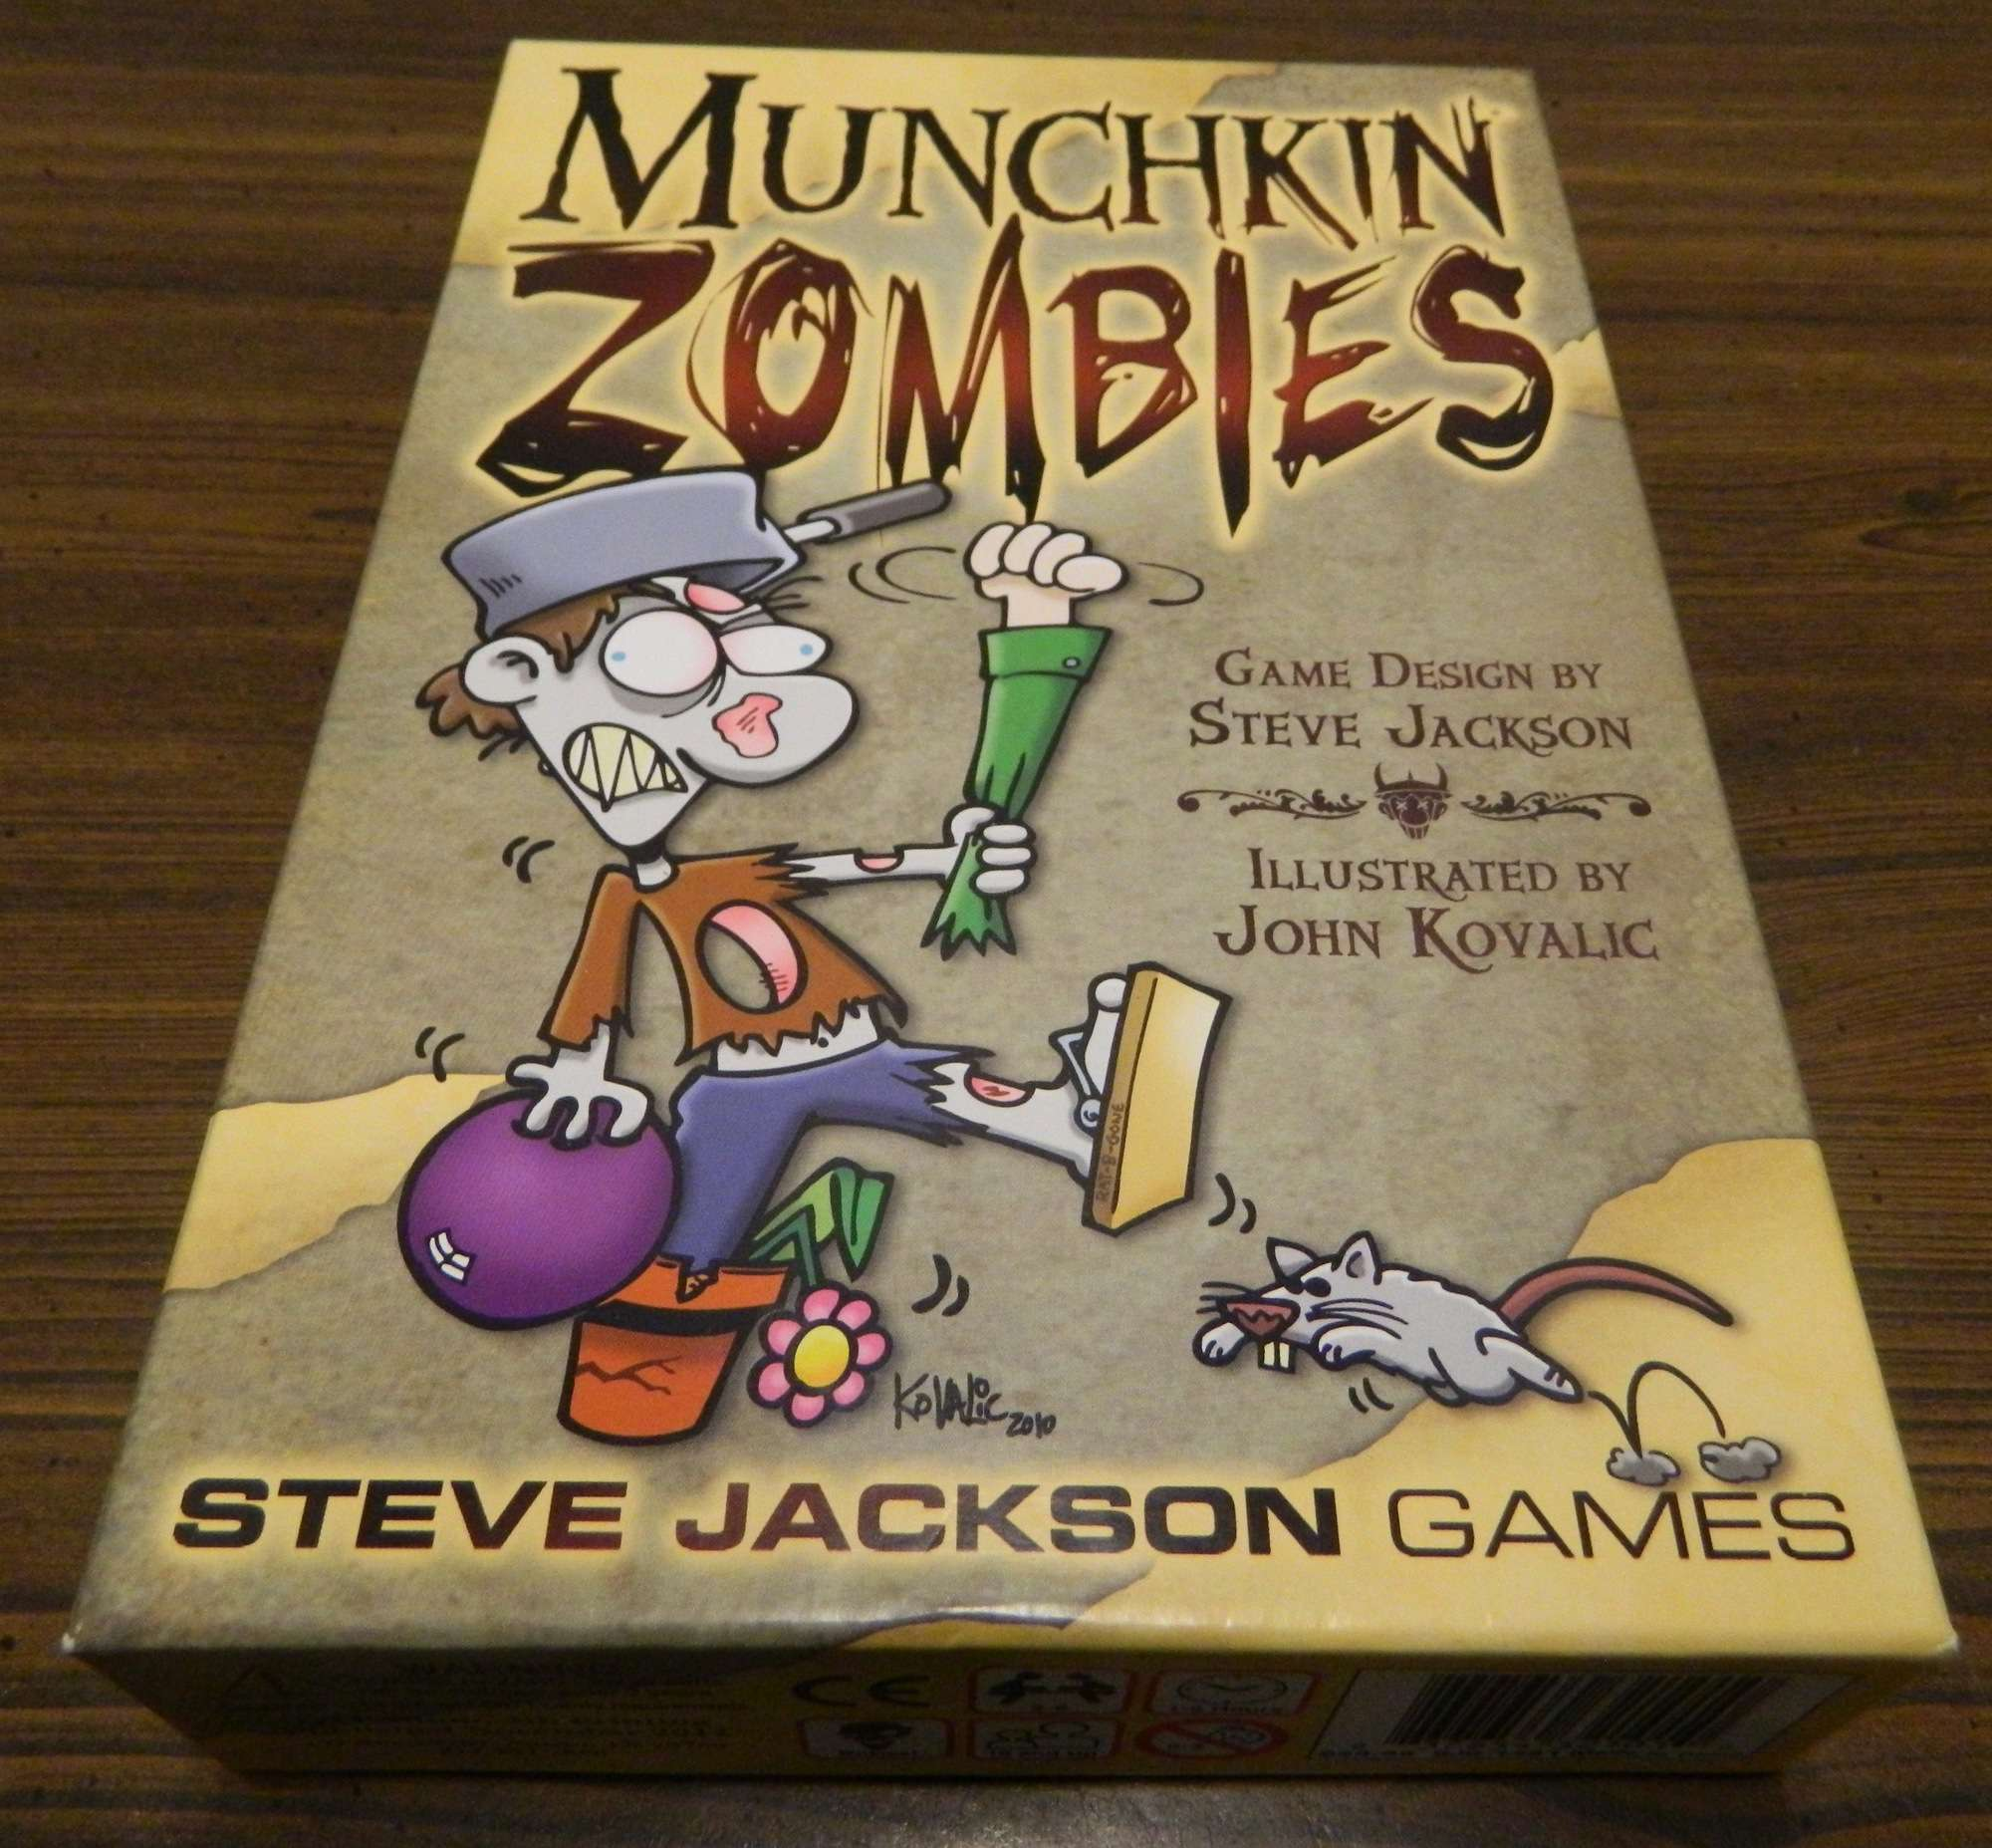 Box for Munchkin Zombies